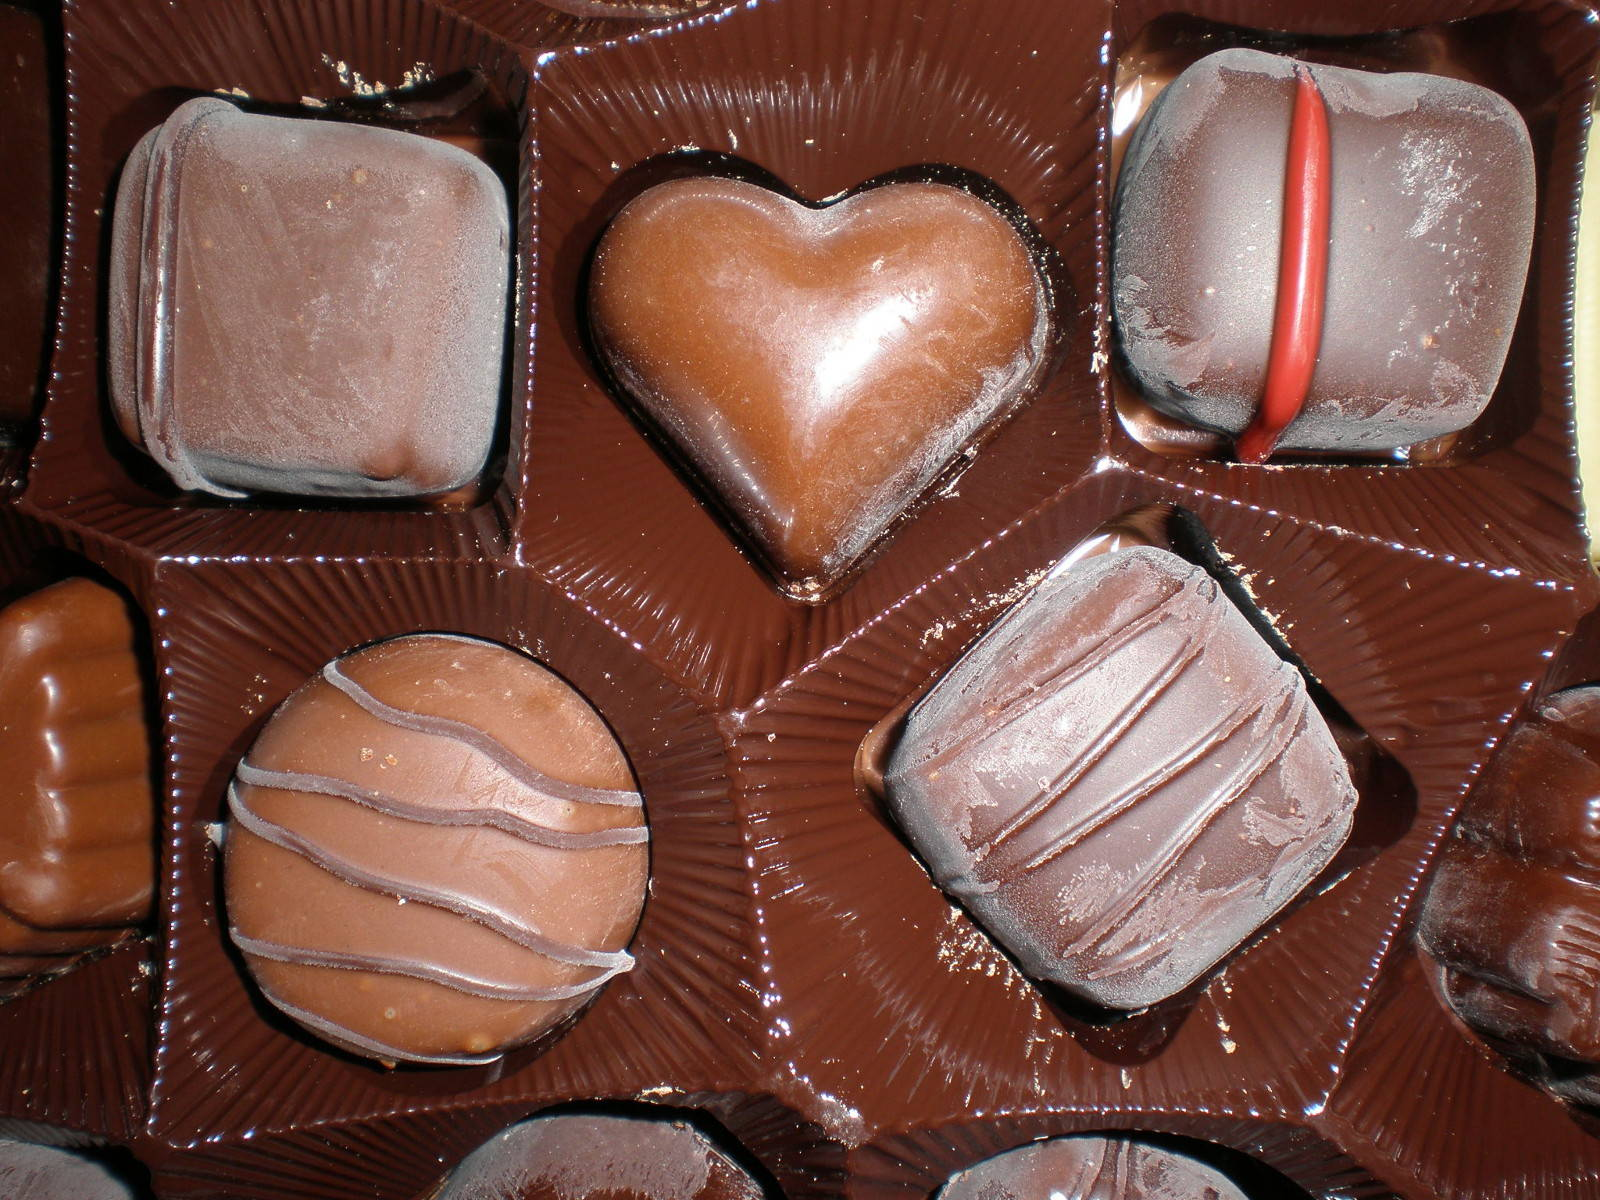 What Does Your Valentine's Chocolate Say About You? 5 Things To Avoid This Holiday